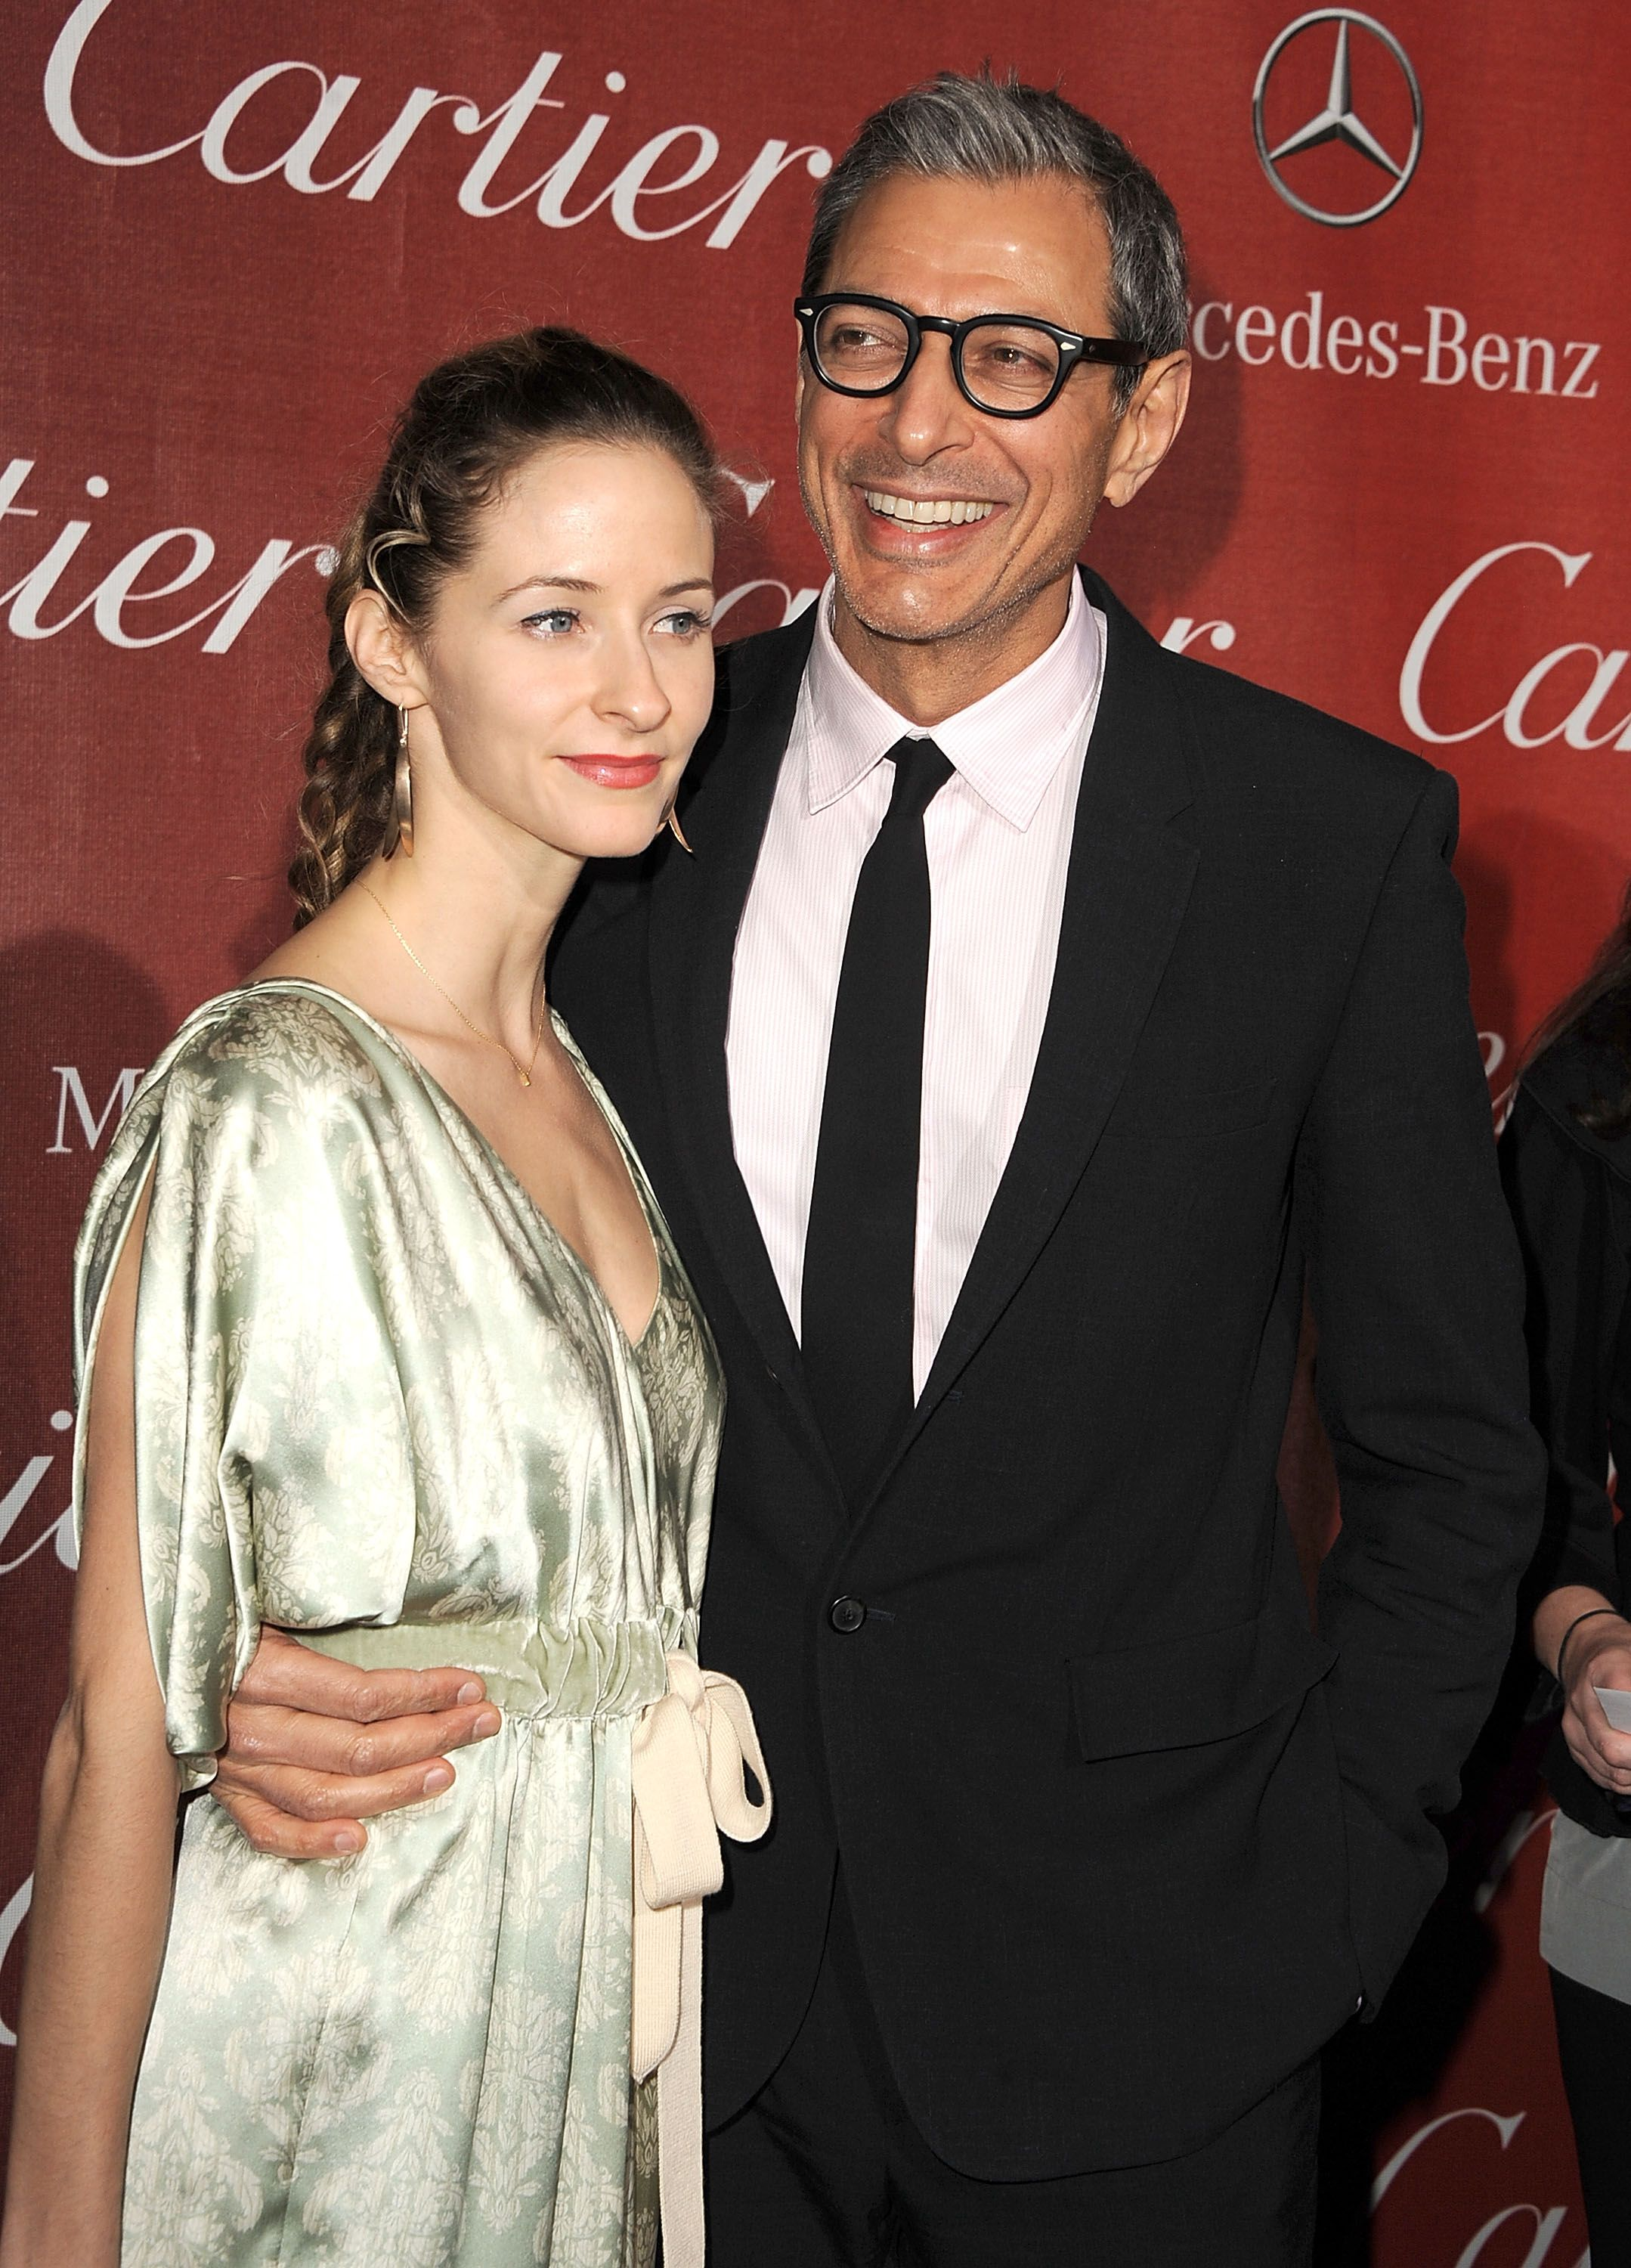 Jeff Goldblum and his wife Emilie Livingston with their son Charlie.  (Photo: Greatstock/Splash)